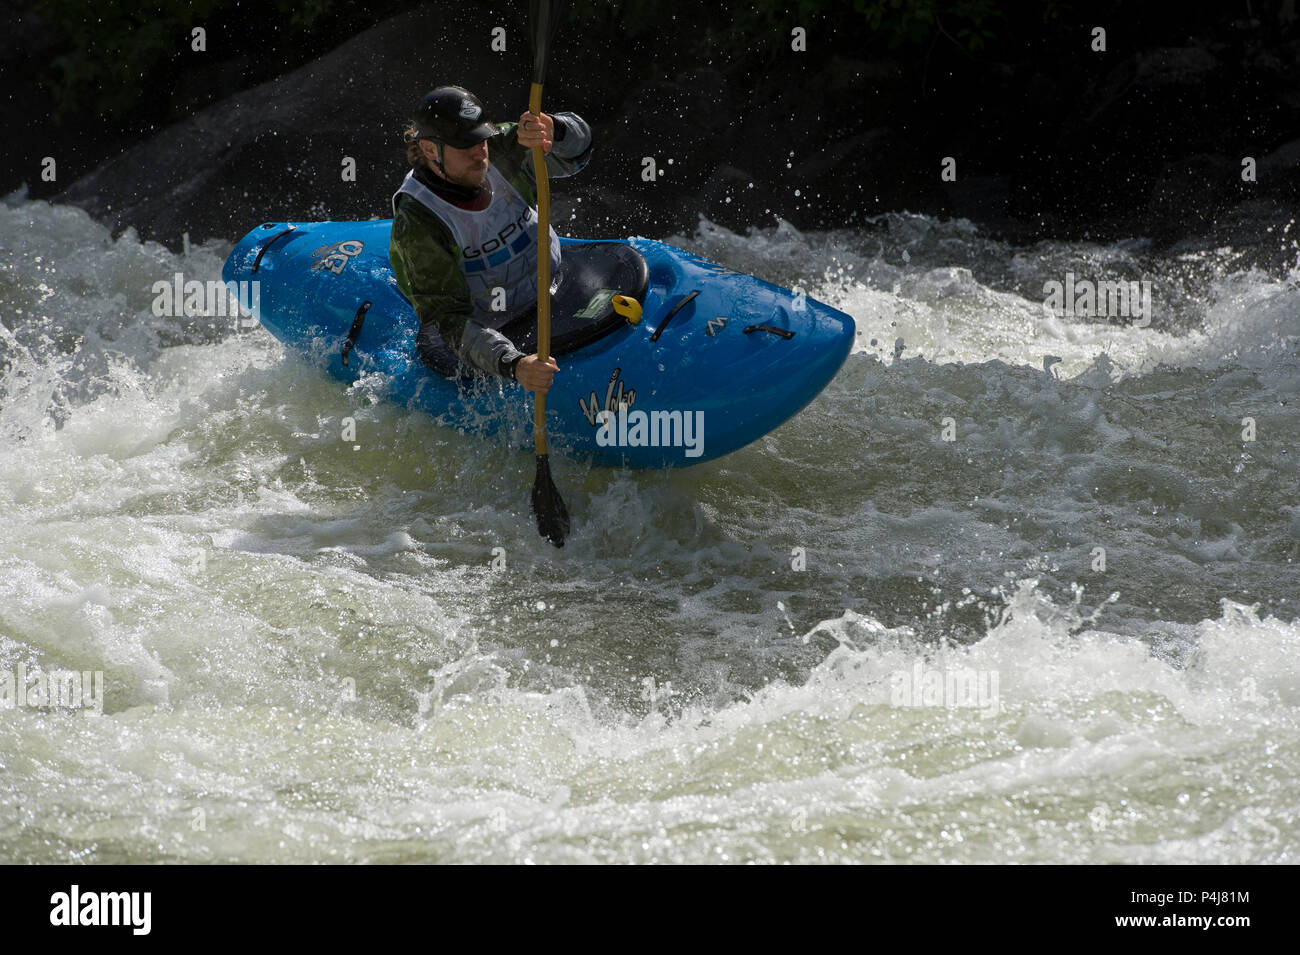 Kayaking on the North Fork of the Payette River in S-Turn Rapid in the 2018 North Fork Championship - Stock Image